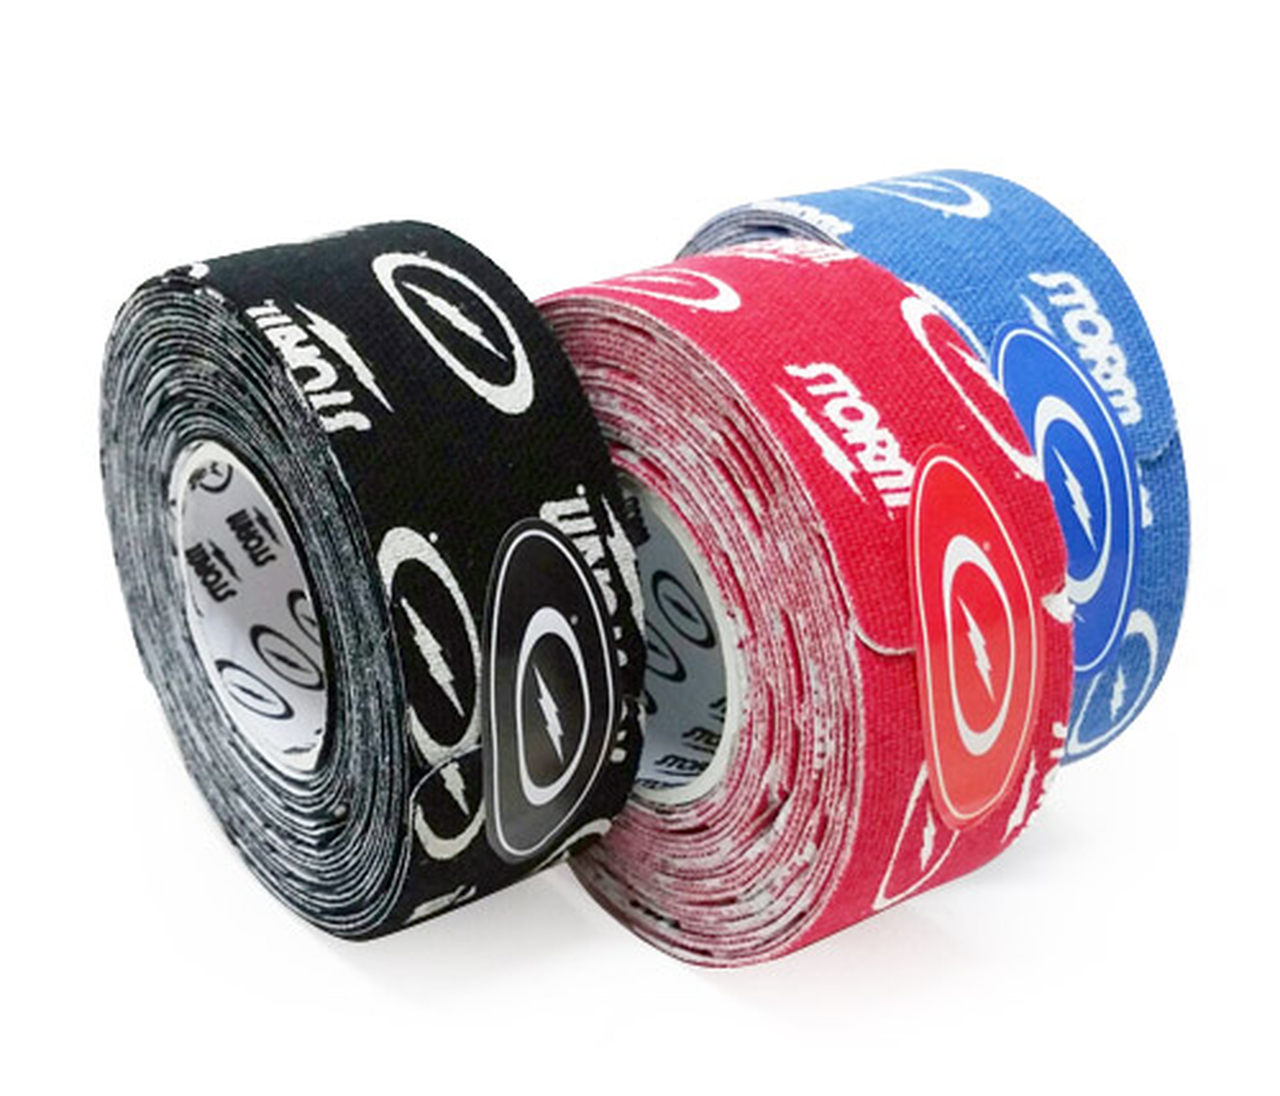 Sports & Fitness Storm Thunder Tape Sports & Outdoors pubfactor.ma